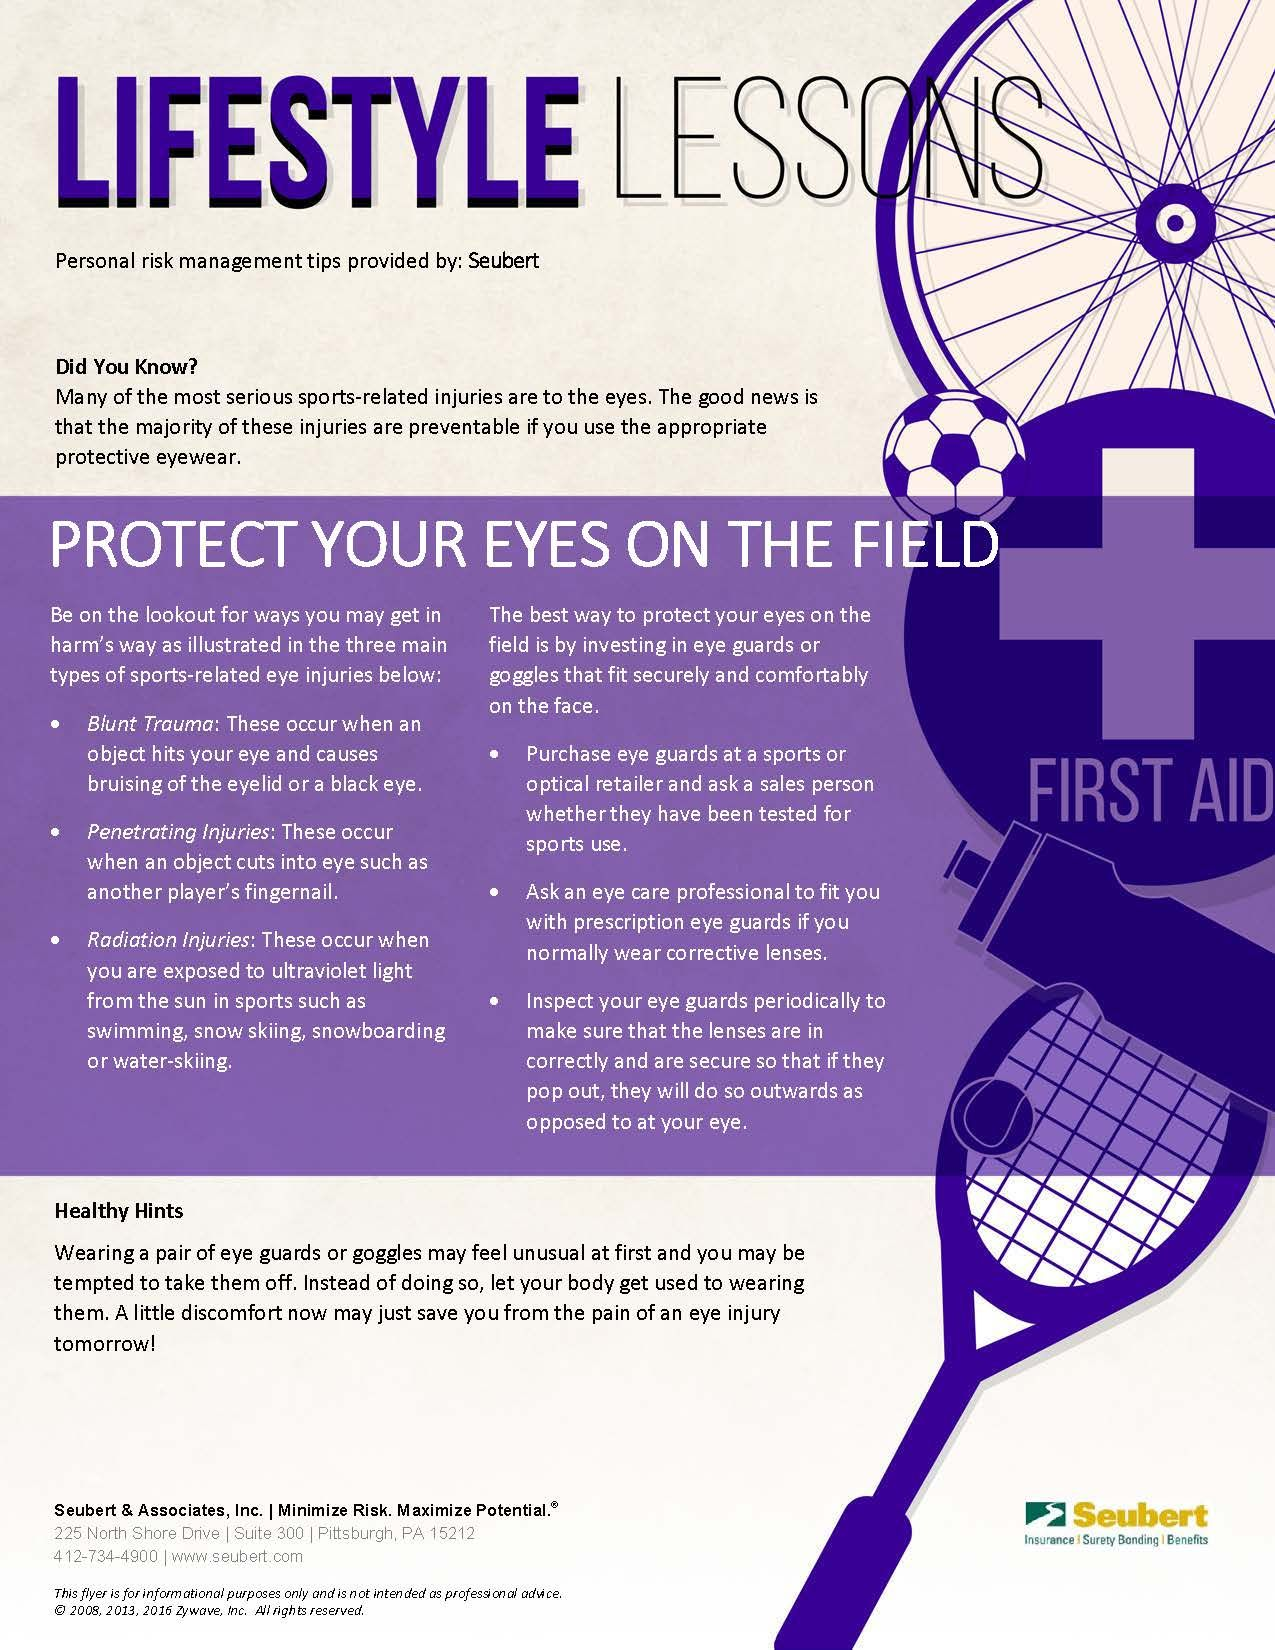 Lifestyle Lessons: Protect Your Eyes on the Field